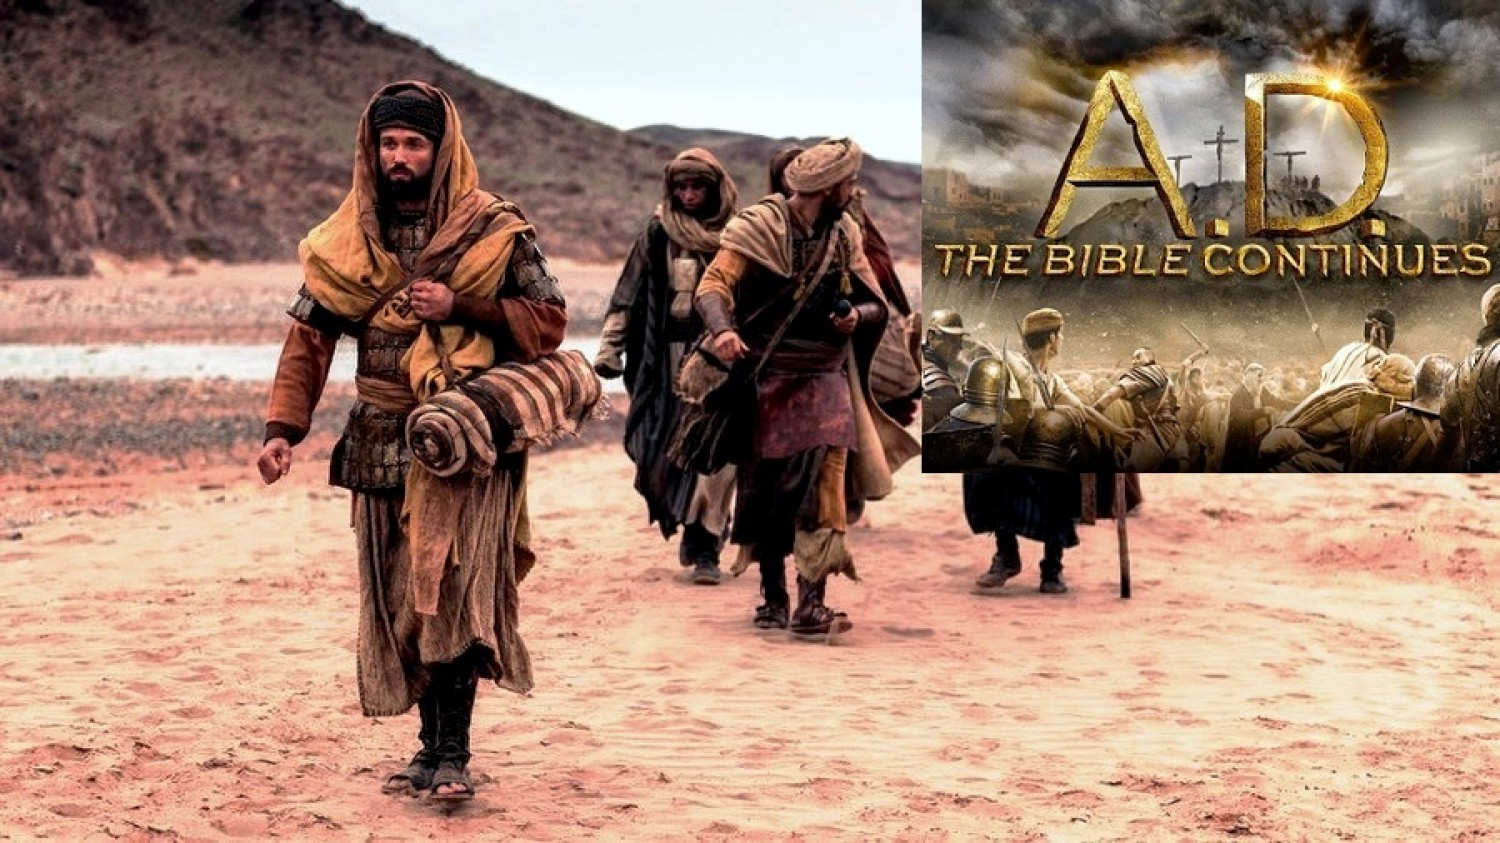 Recap & Review - Episode 8 / A.D. The Bible Continues